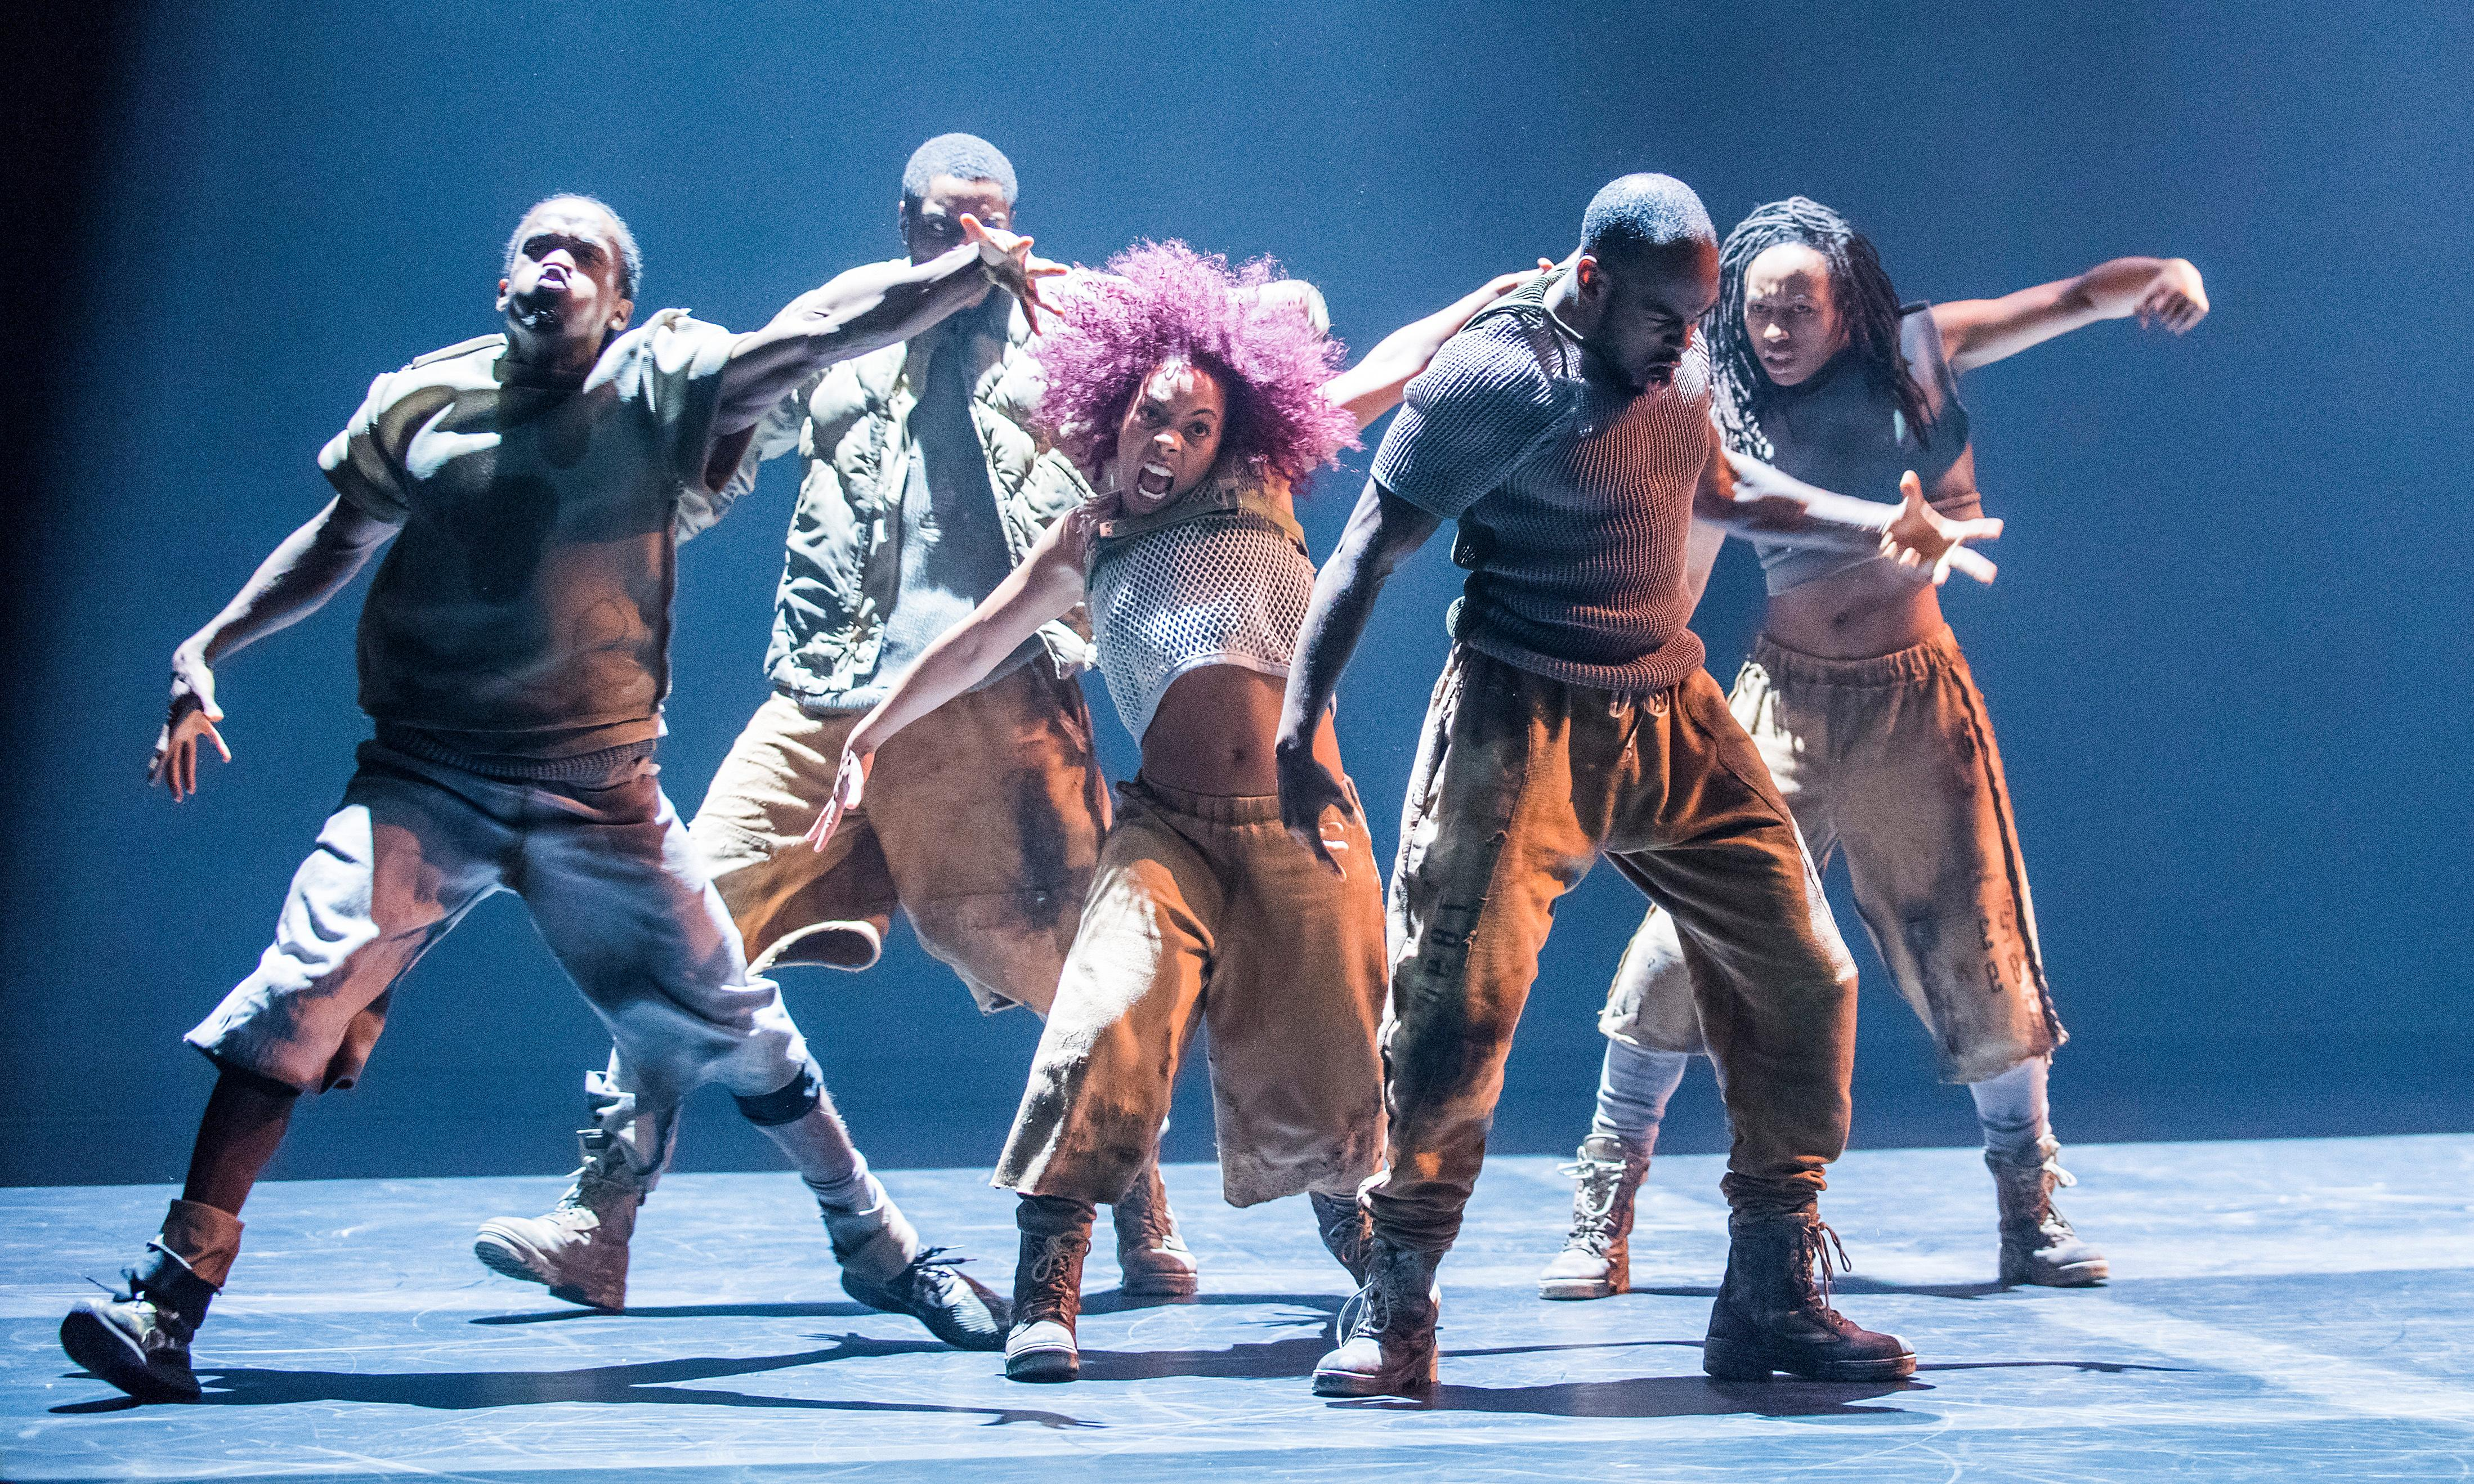 Leaps and bounds: what I learned in 13 years as the Observer's dance critic